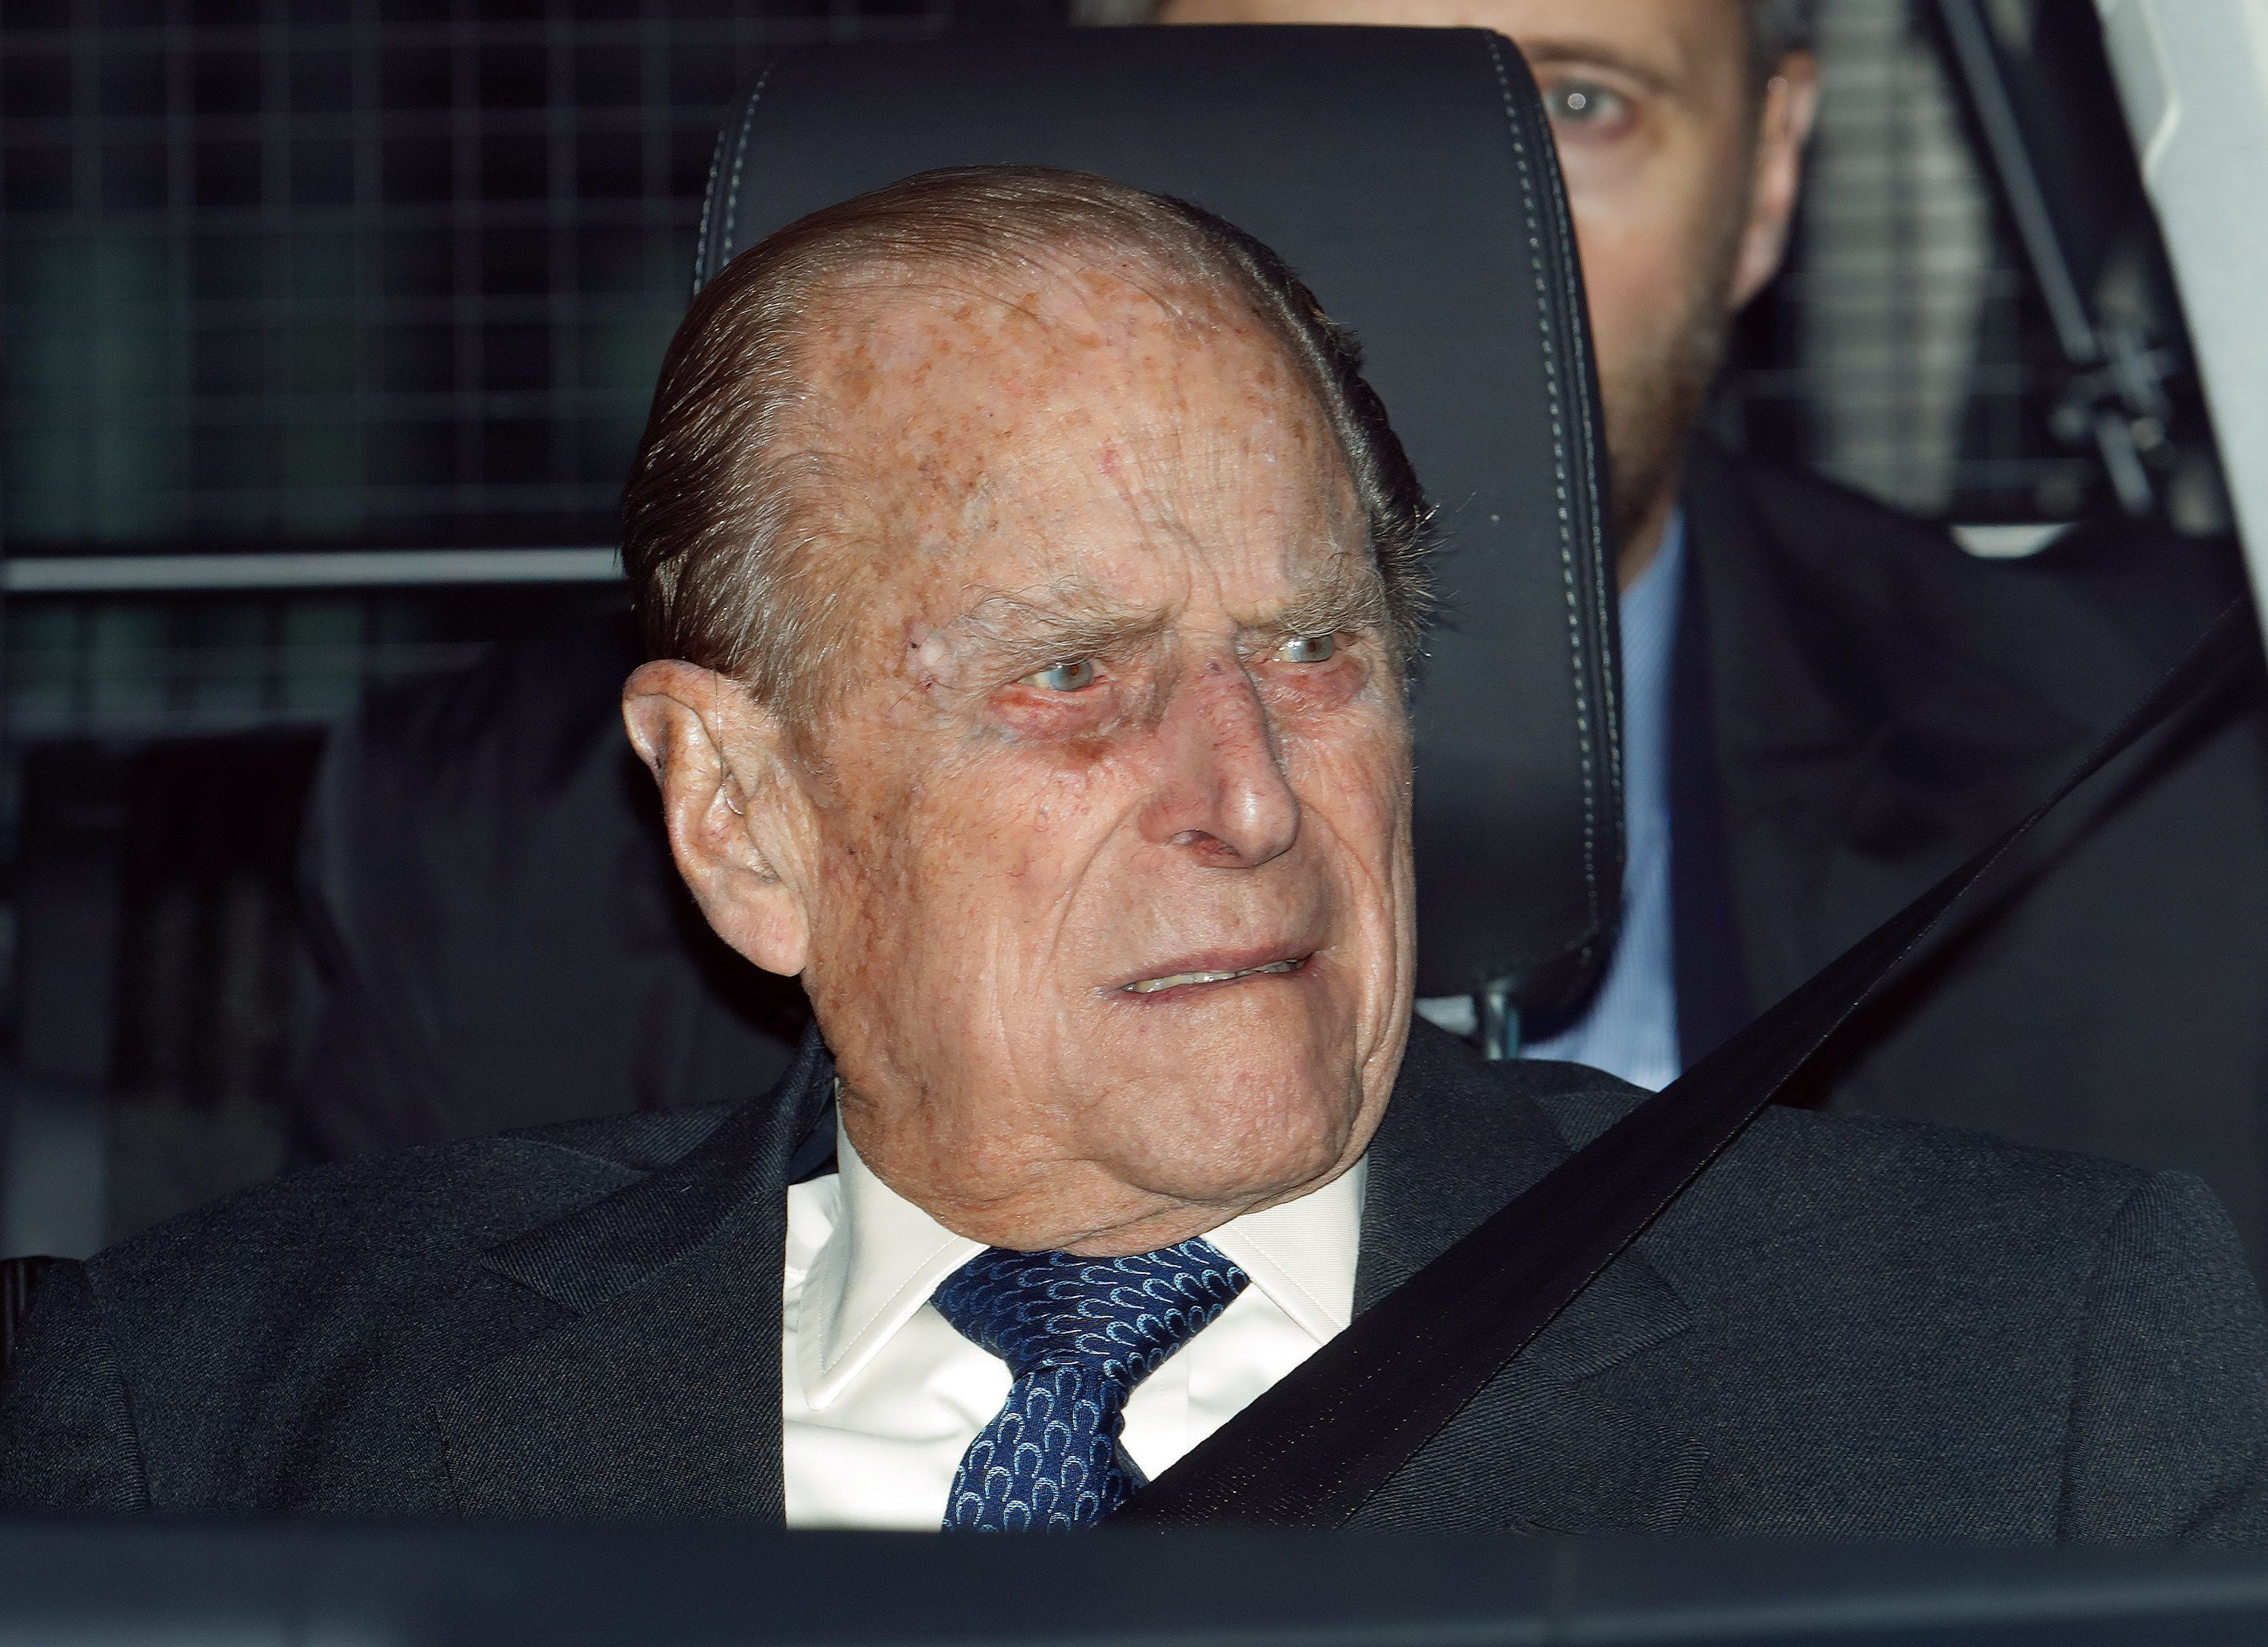 Prince Philip gives up driver's license weeks after car crash